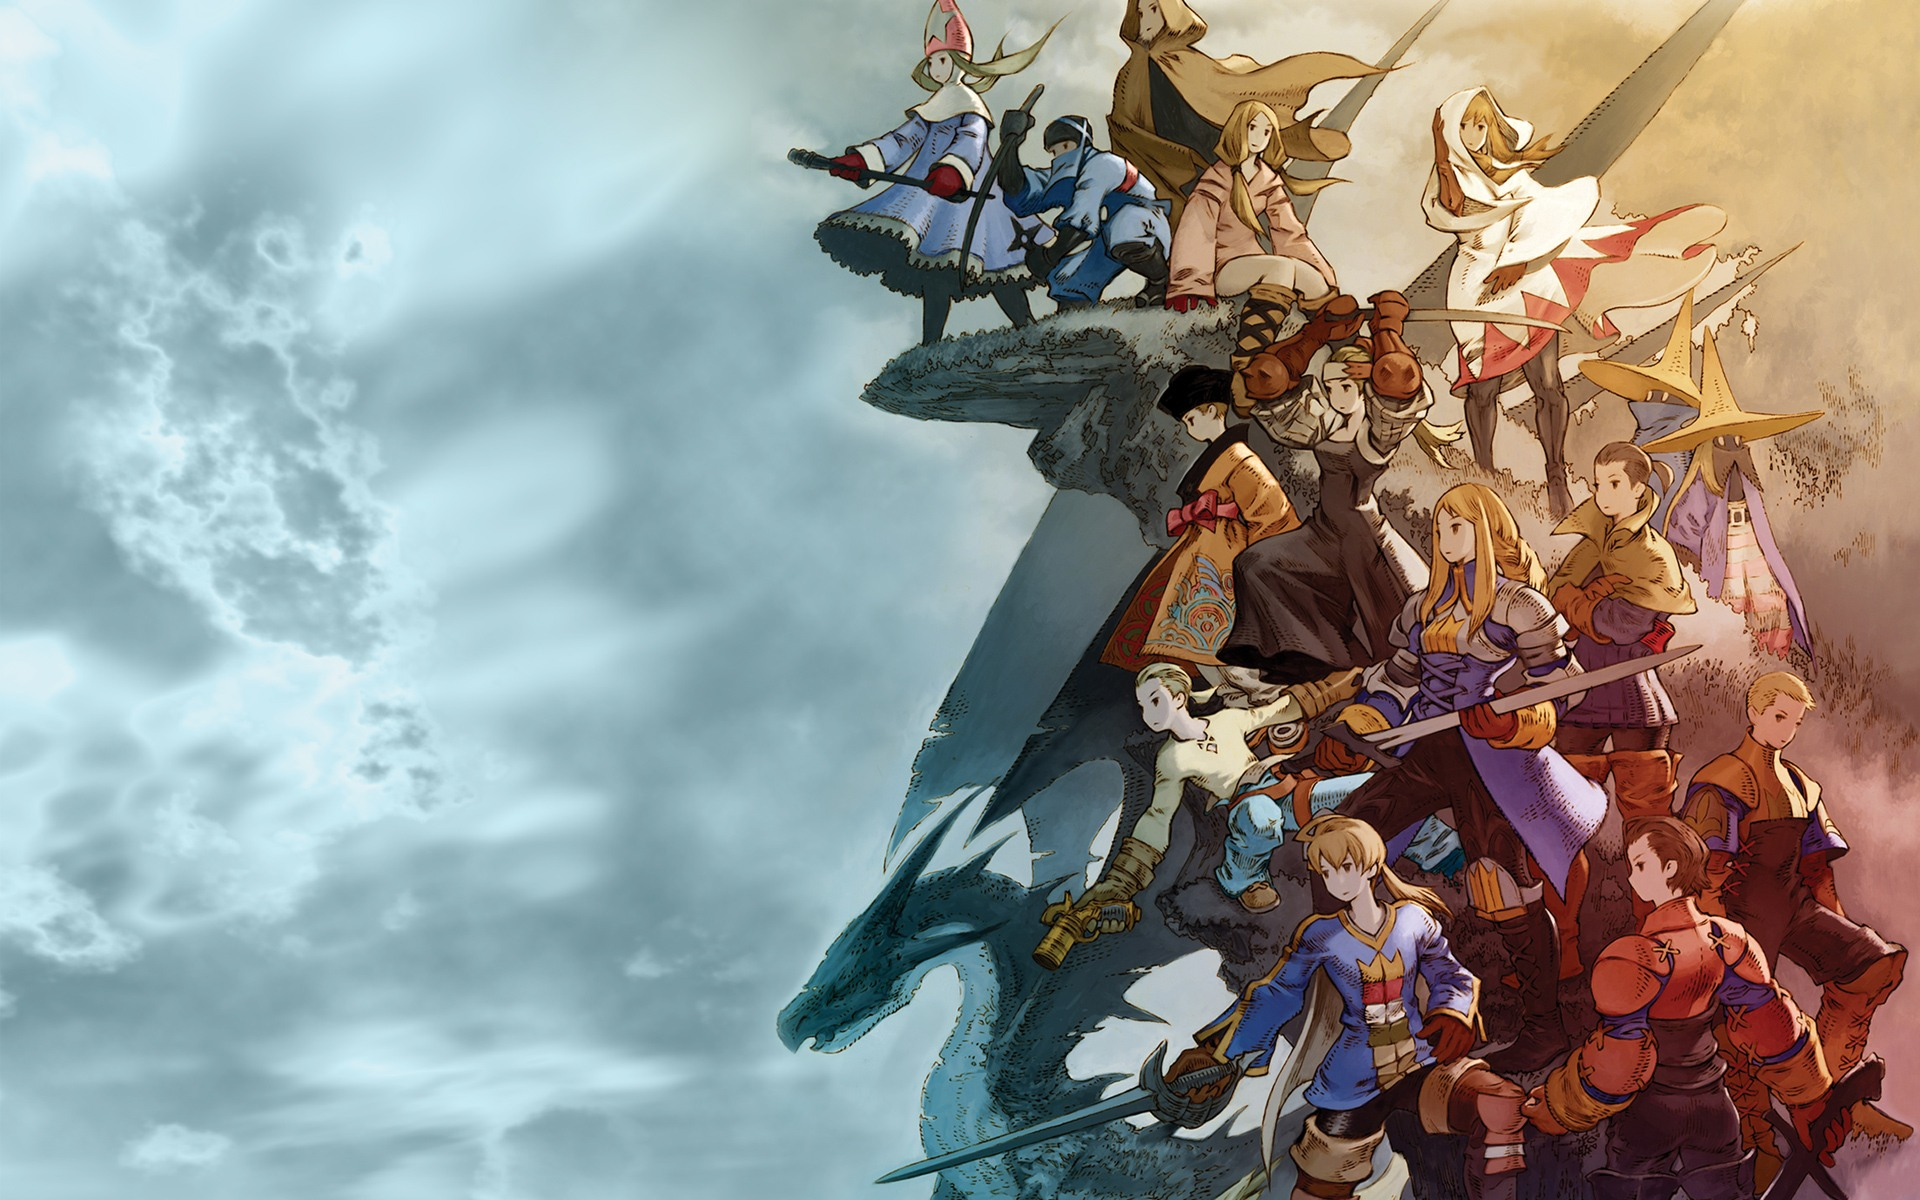 file_4368_final-fantasy-tactics-the-war-of-the-lions